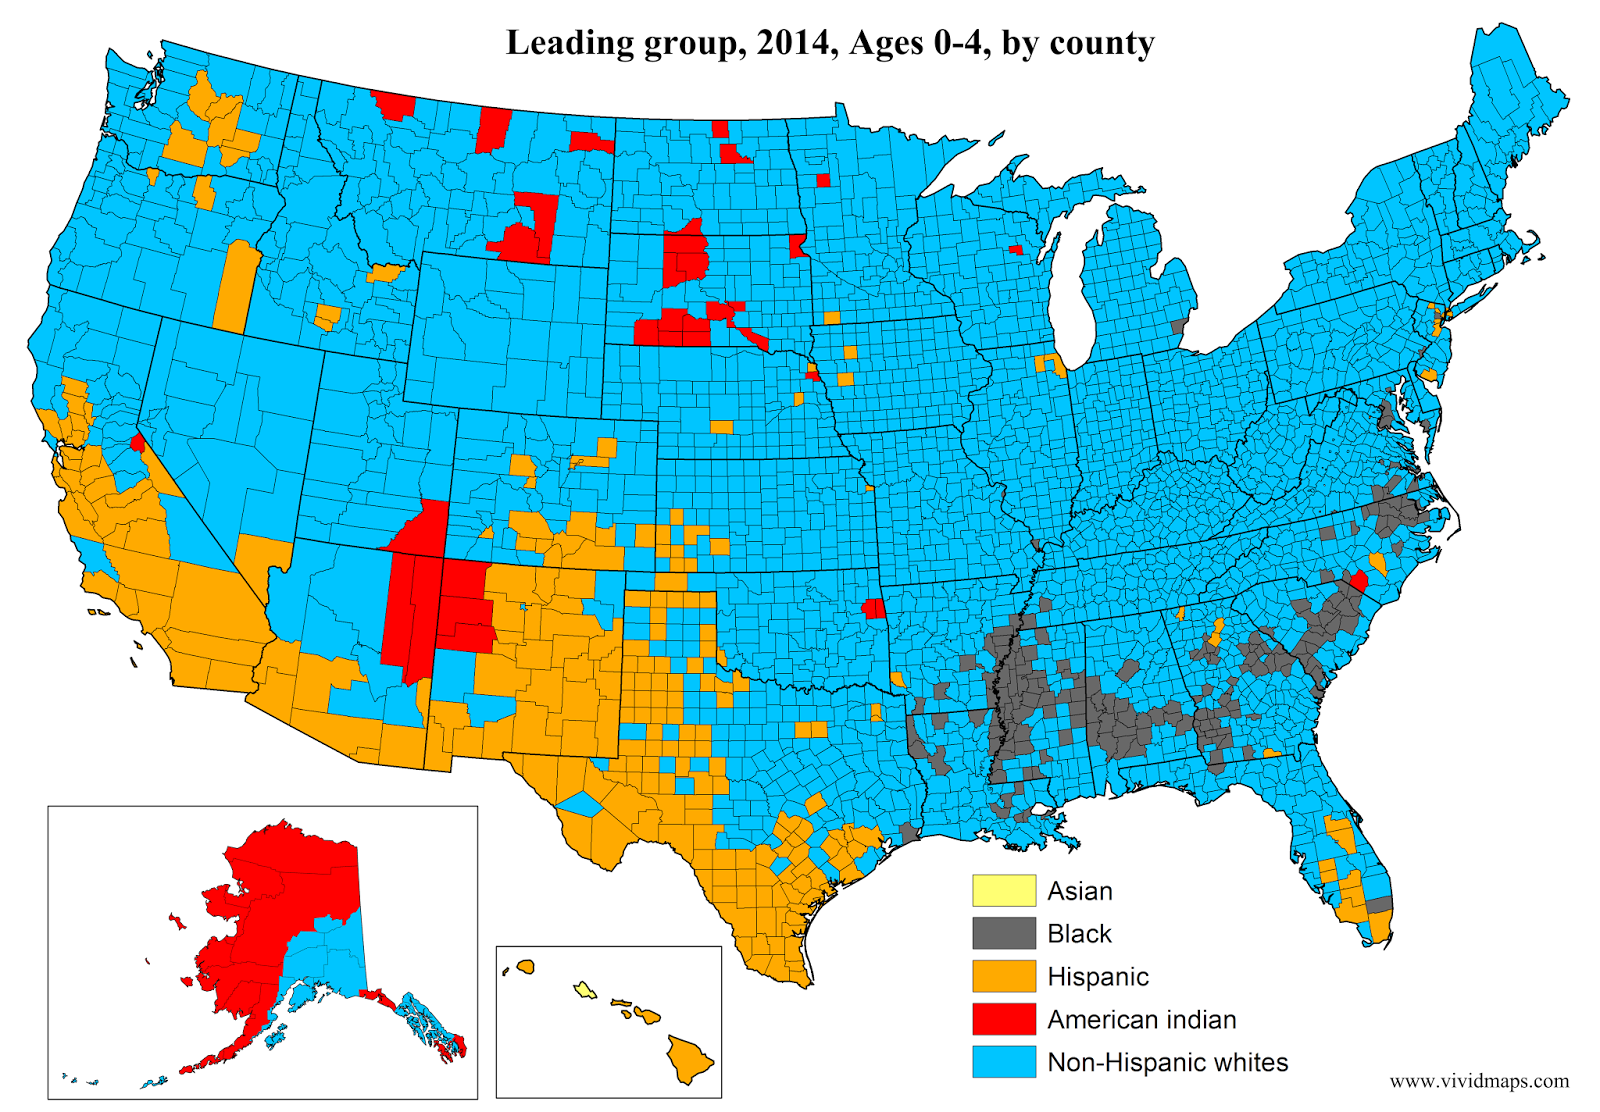 Leading group, Ages 0-4, by county